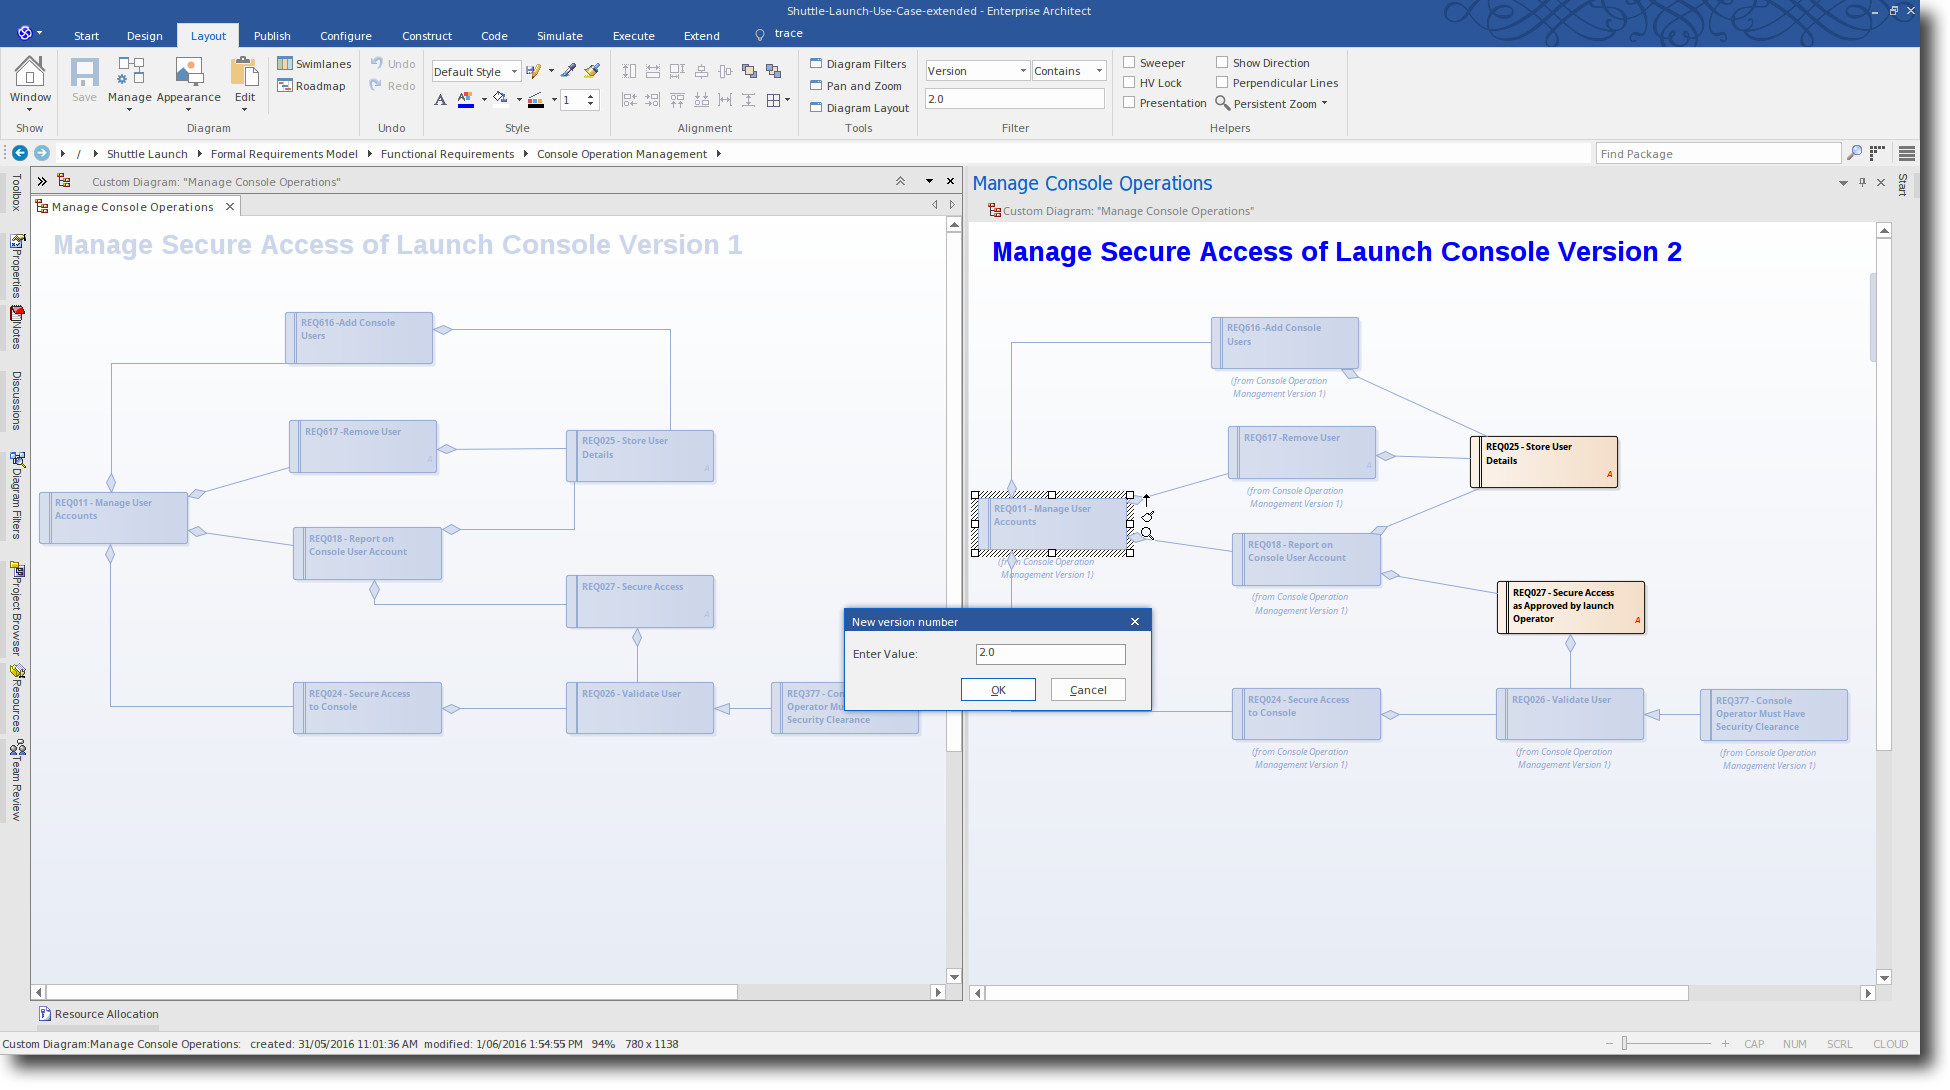 Enterprise Architect 13: Time Aware Modeling - Enter New version Number for Cloned Element